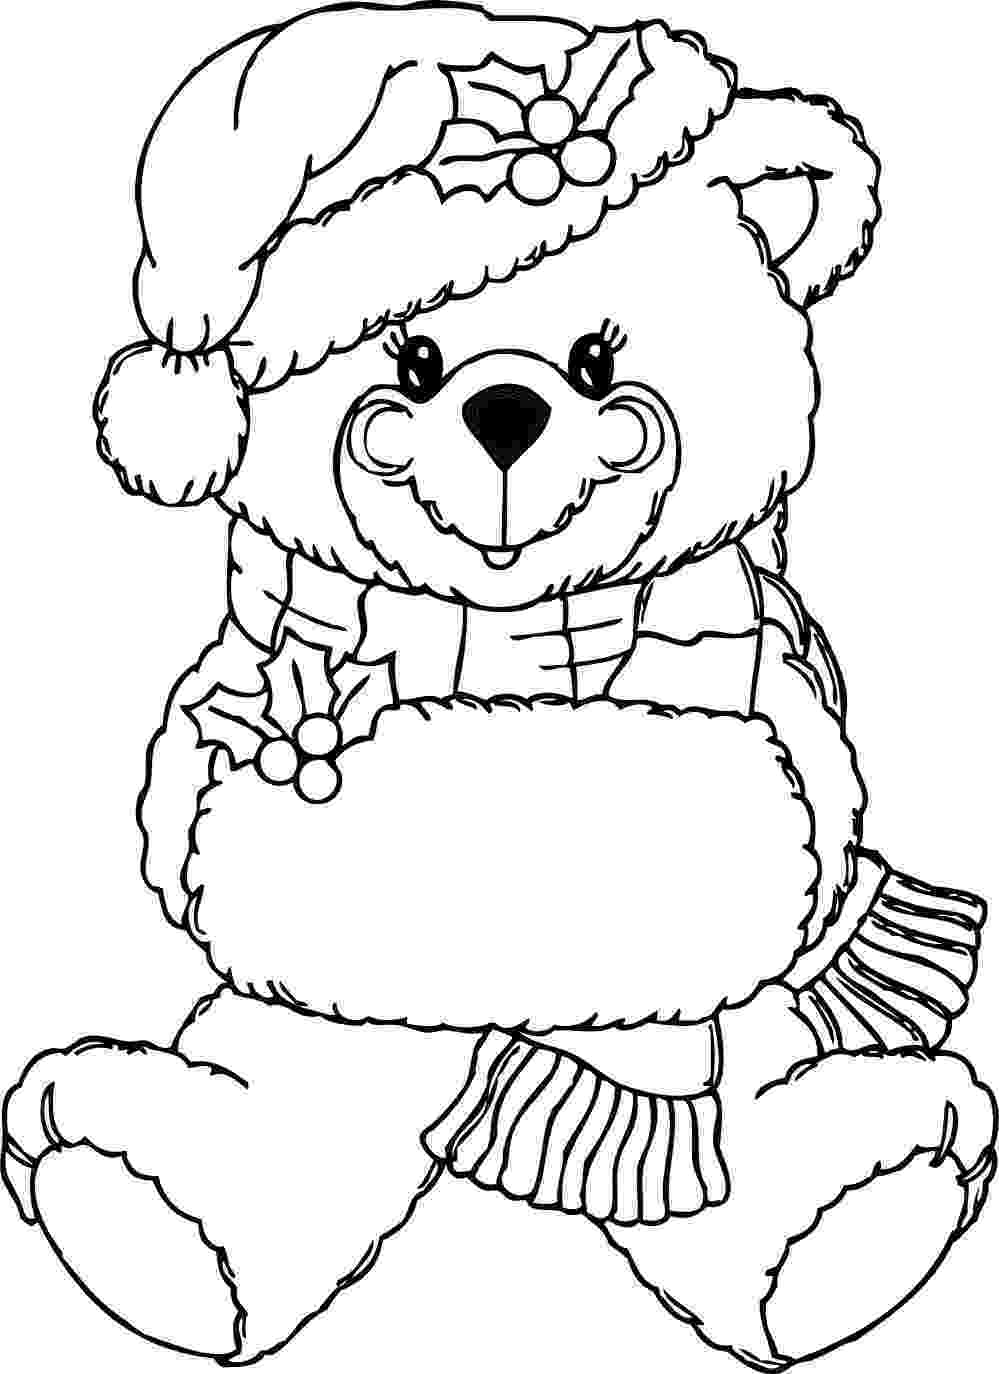 teddy bear coloring pictures free printable teddy bear coloring pages technosamrat teddy coloring bear pictures